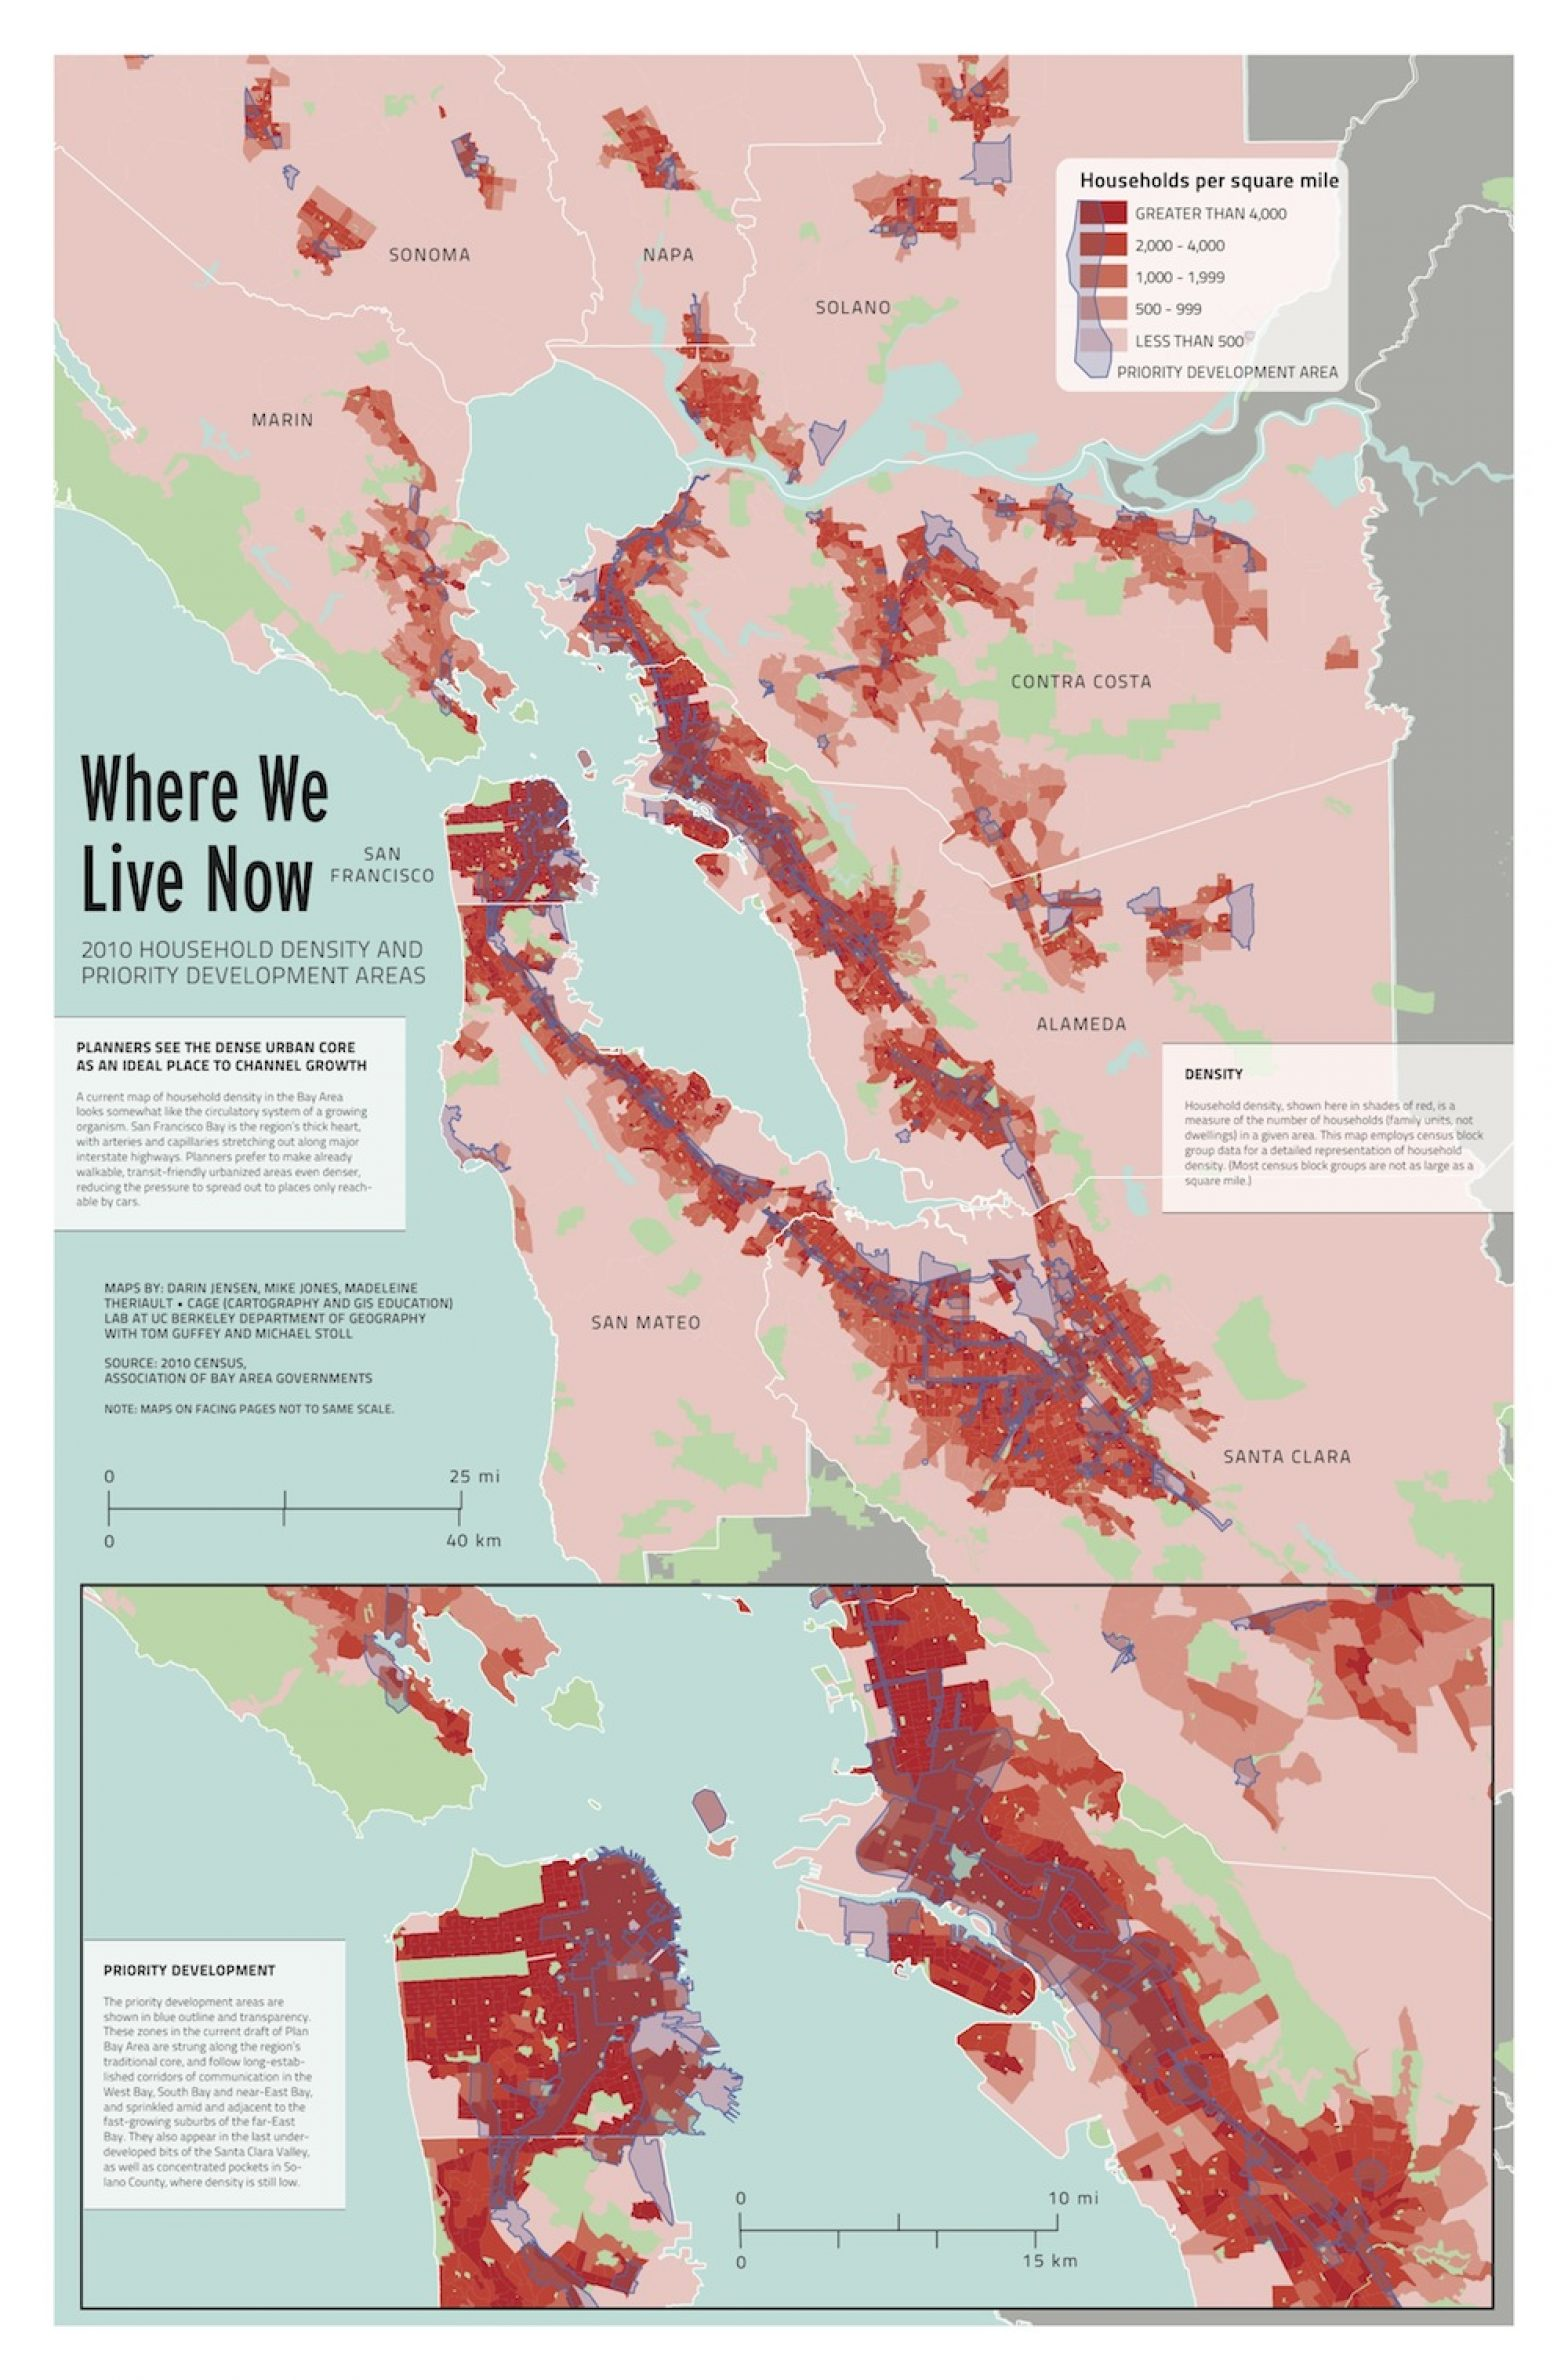 b01-06_where_we_live_now_small_size.jpg